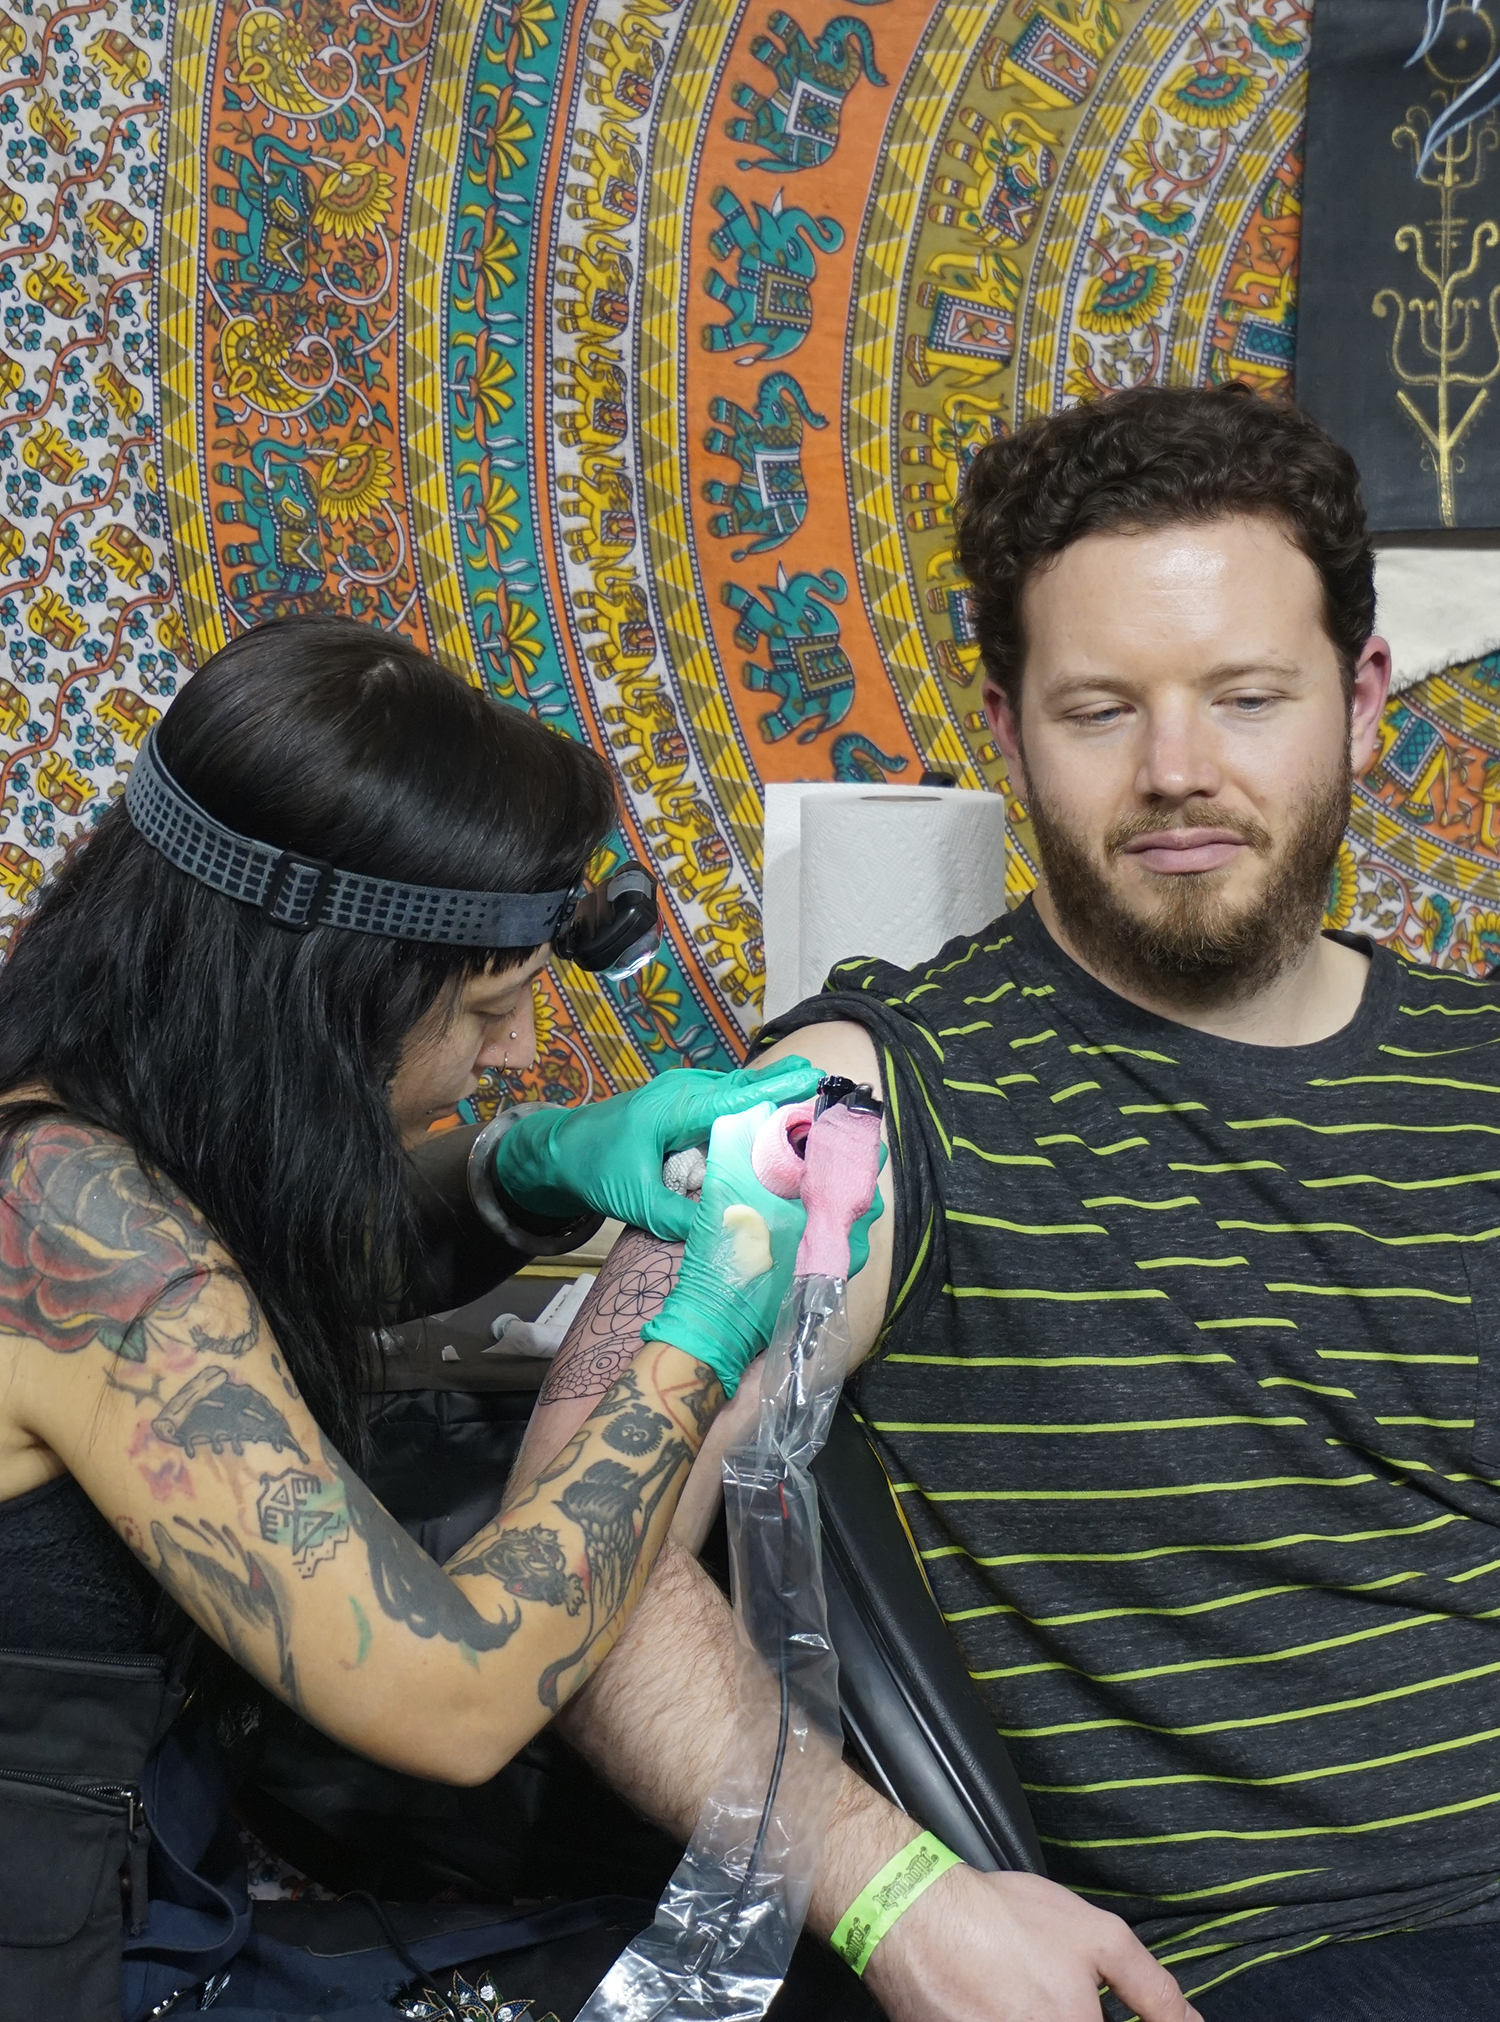 becki wilson tattooing a snake tattoo, outlining